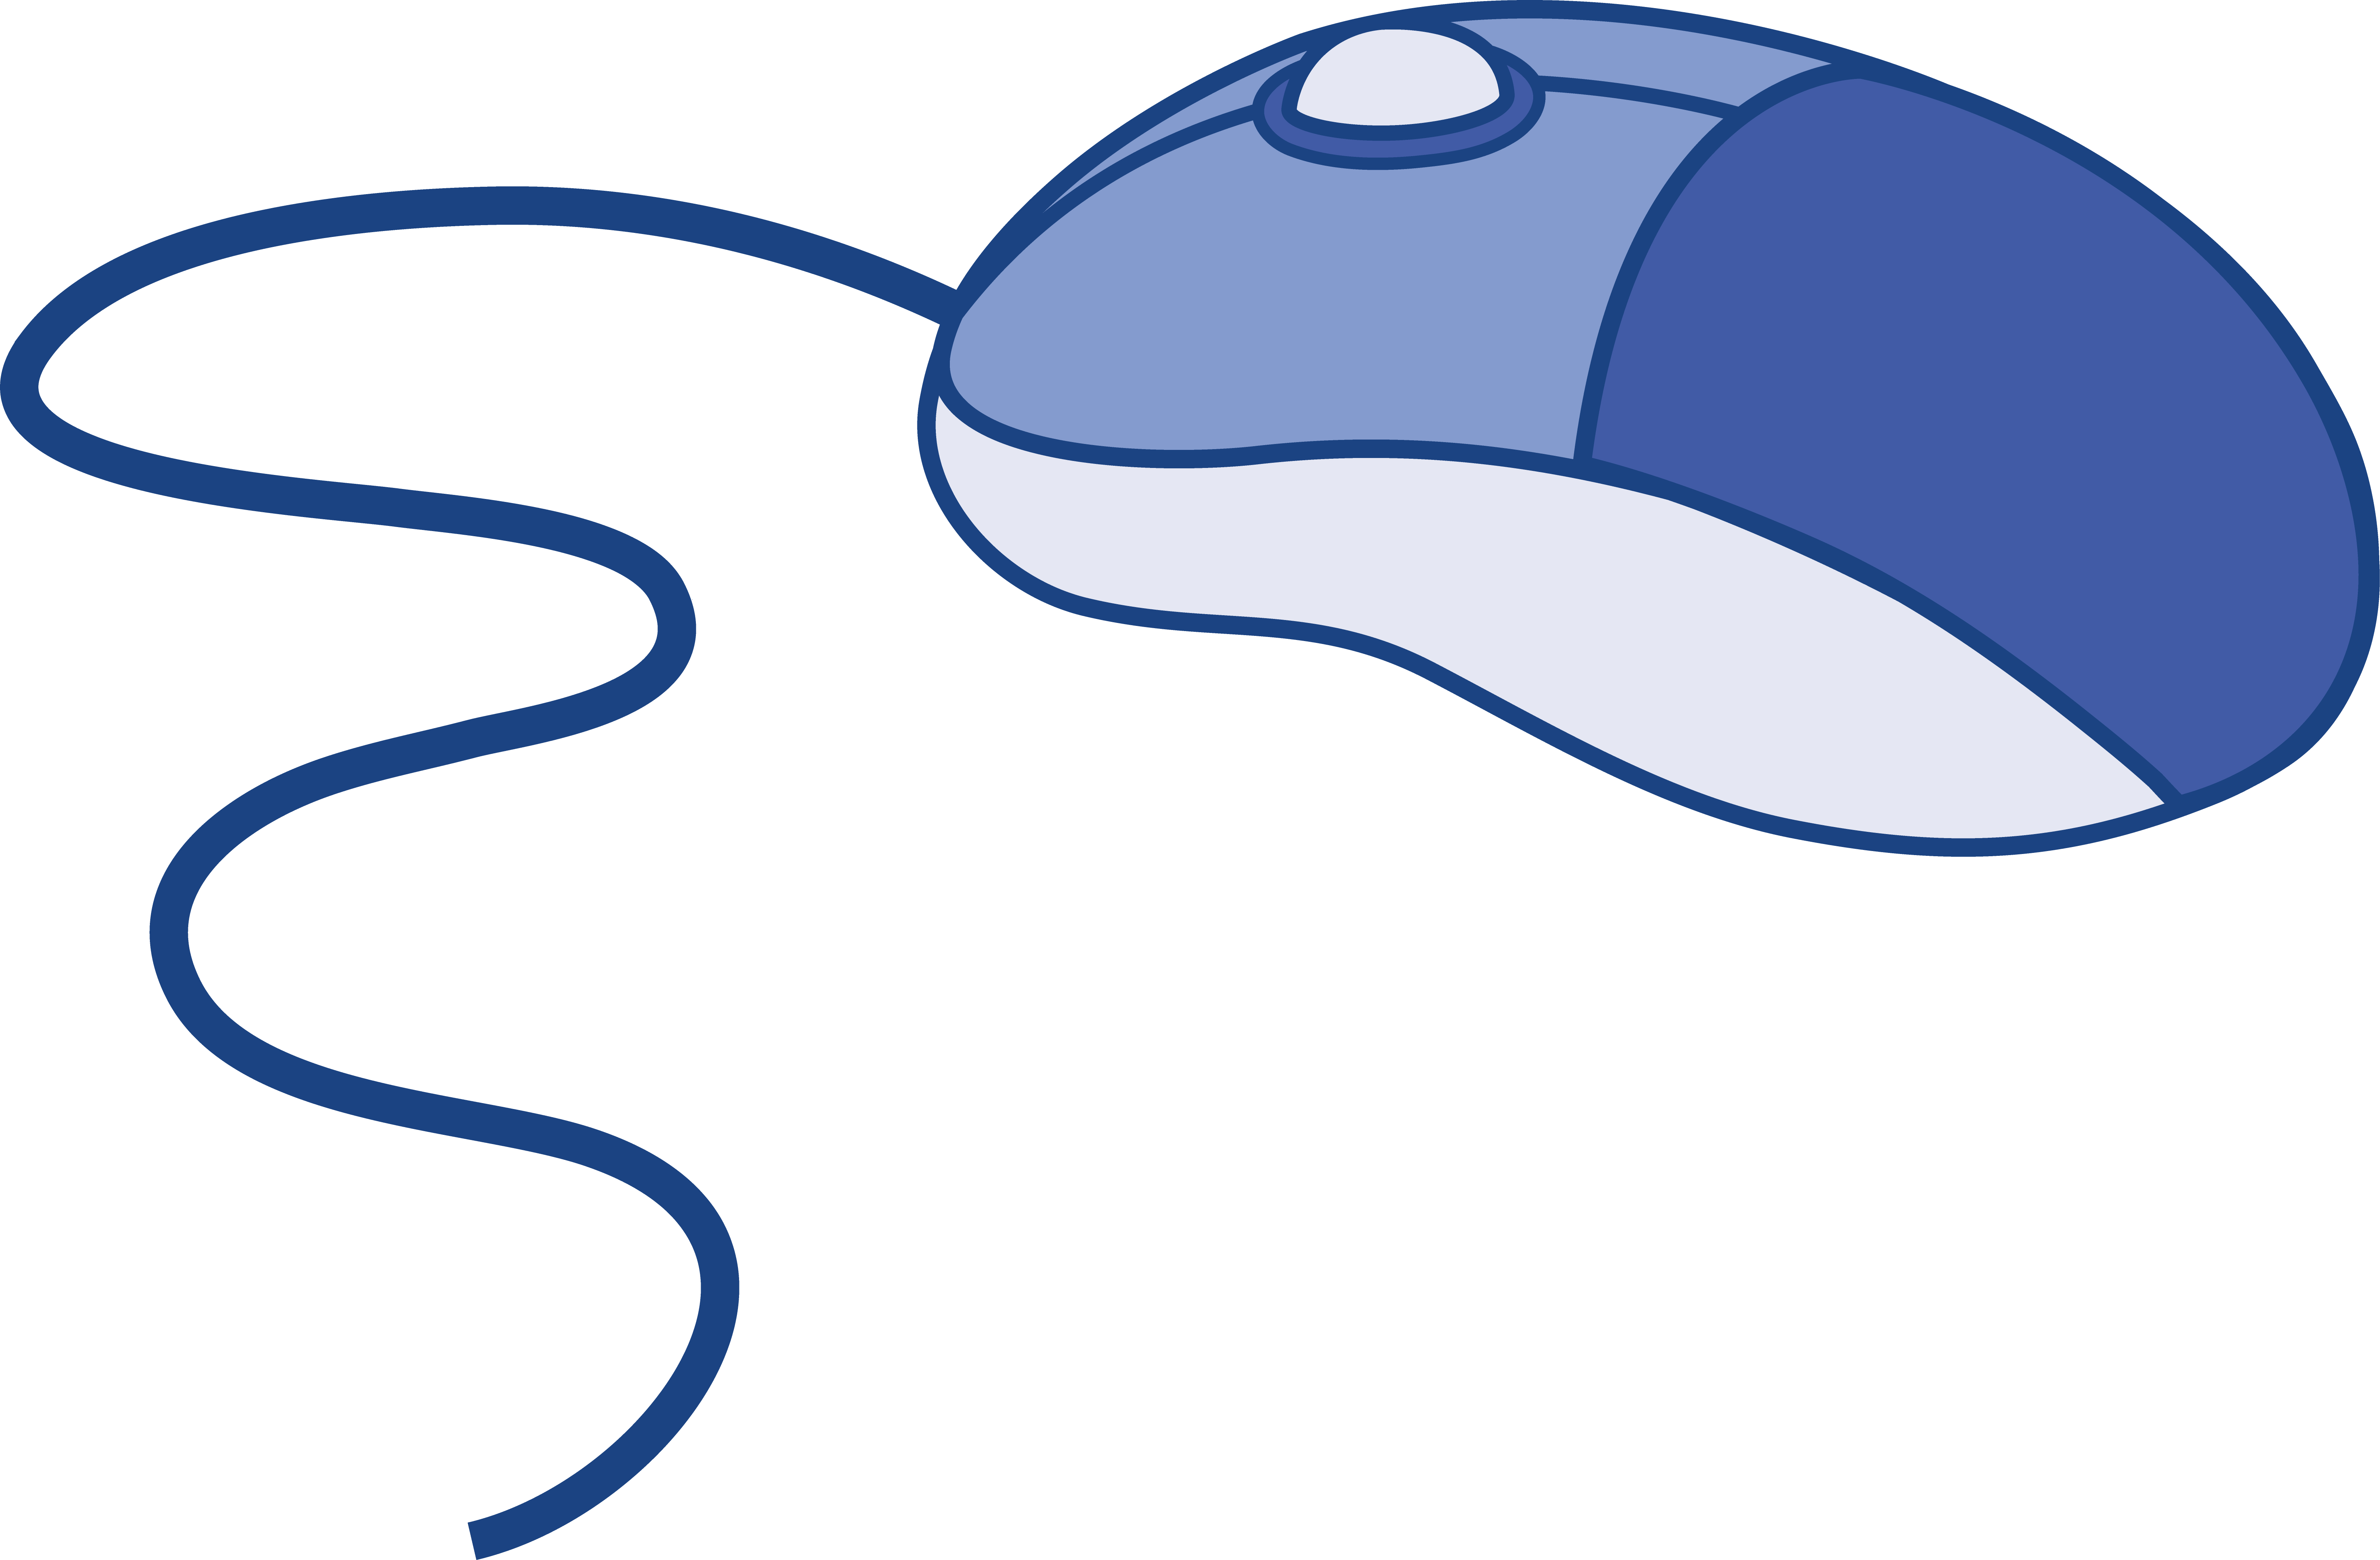 Cartoon Computer Clipart.